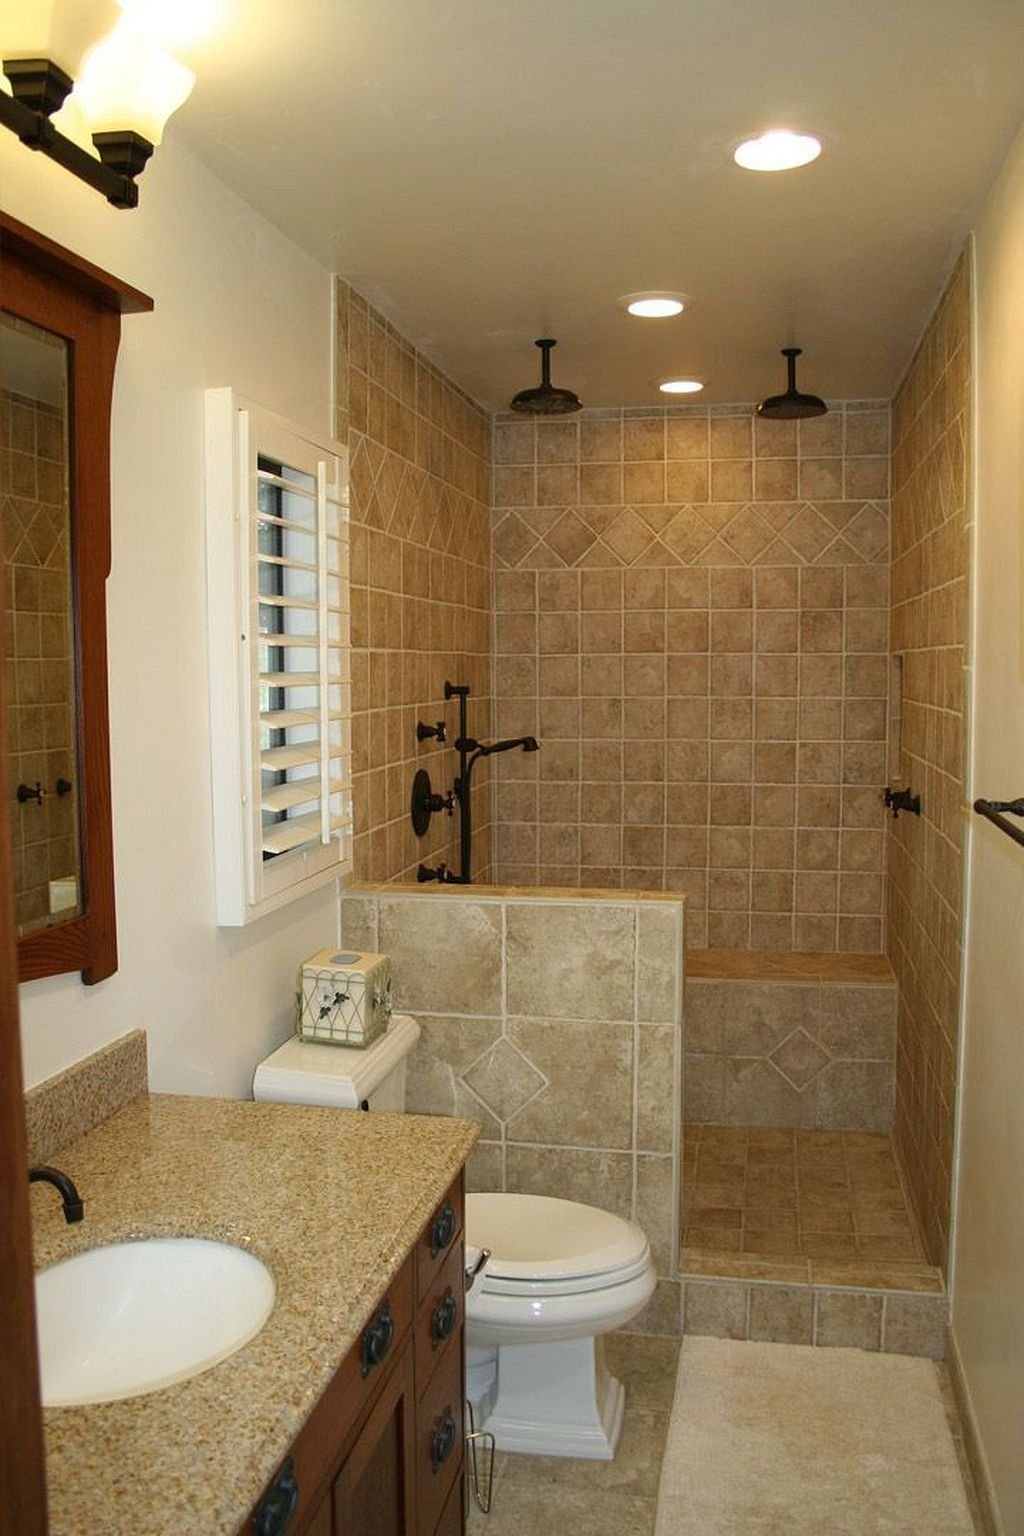 Insanely Cool Small Master Bathroom Remodel Ideas On A Budget 45 Small Bathroom Small Space Bathroom Small Master Bathroom